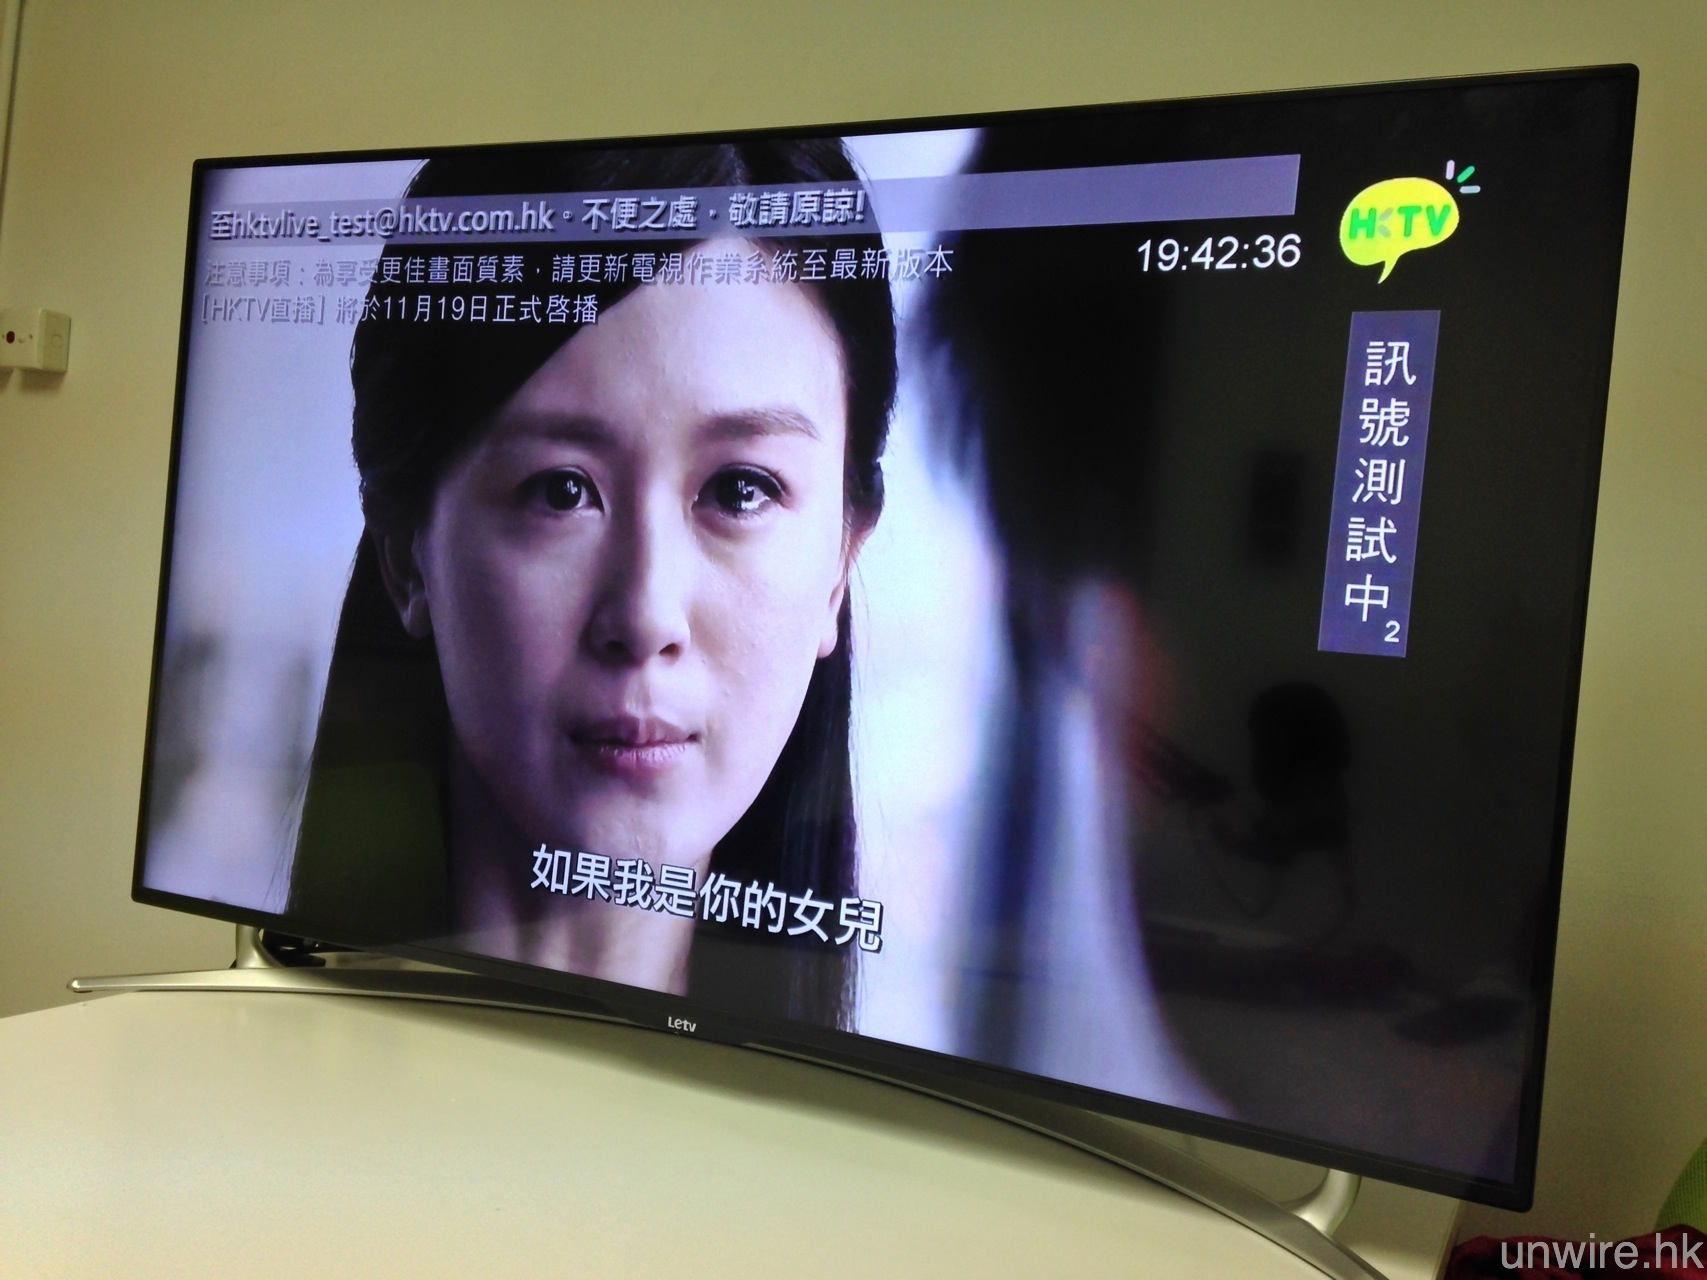 Android TV 成趨勢‧未來選購首選